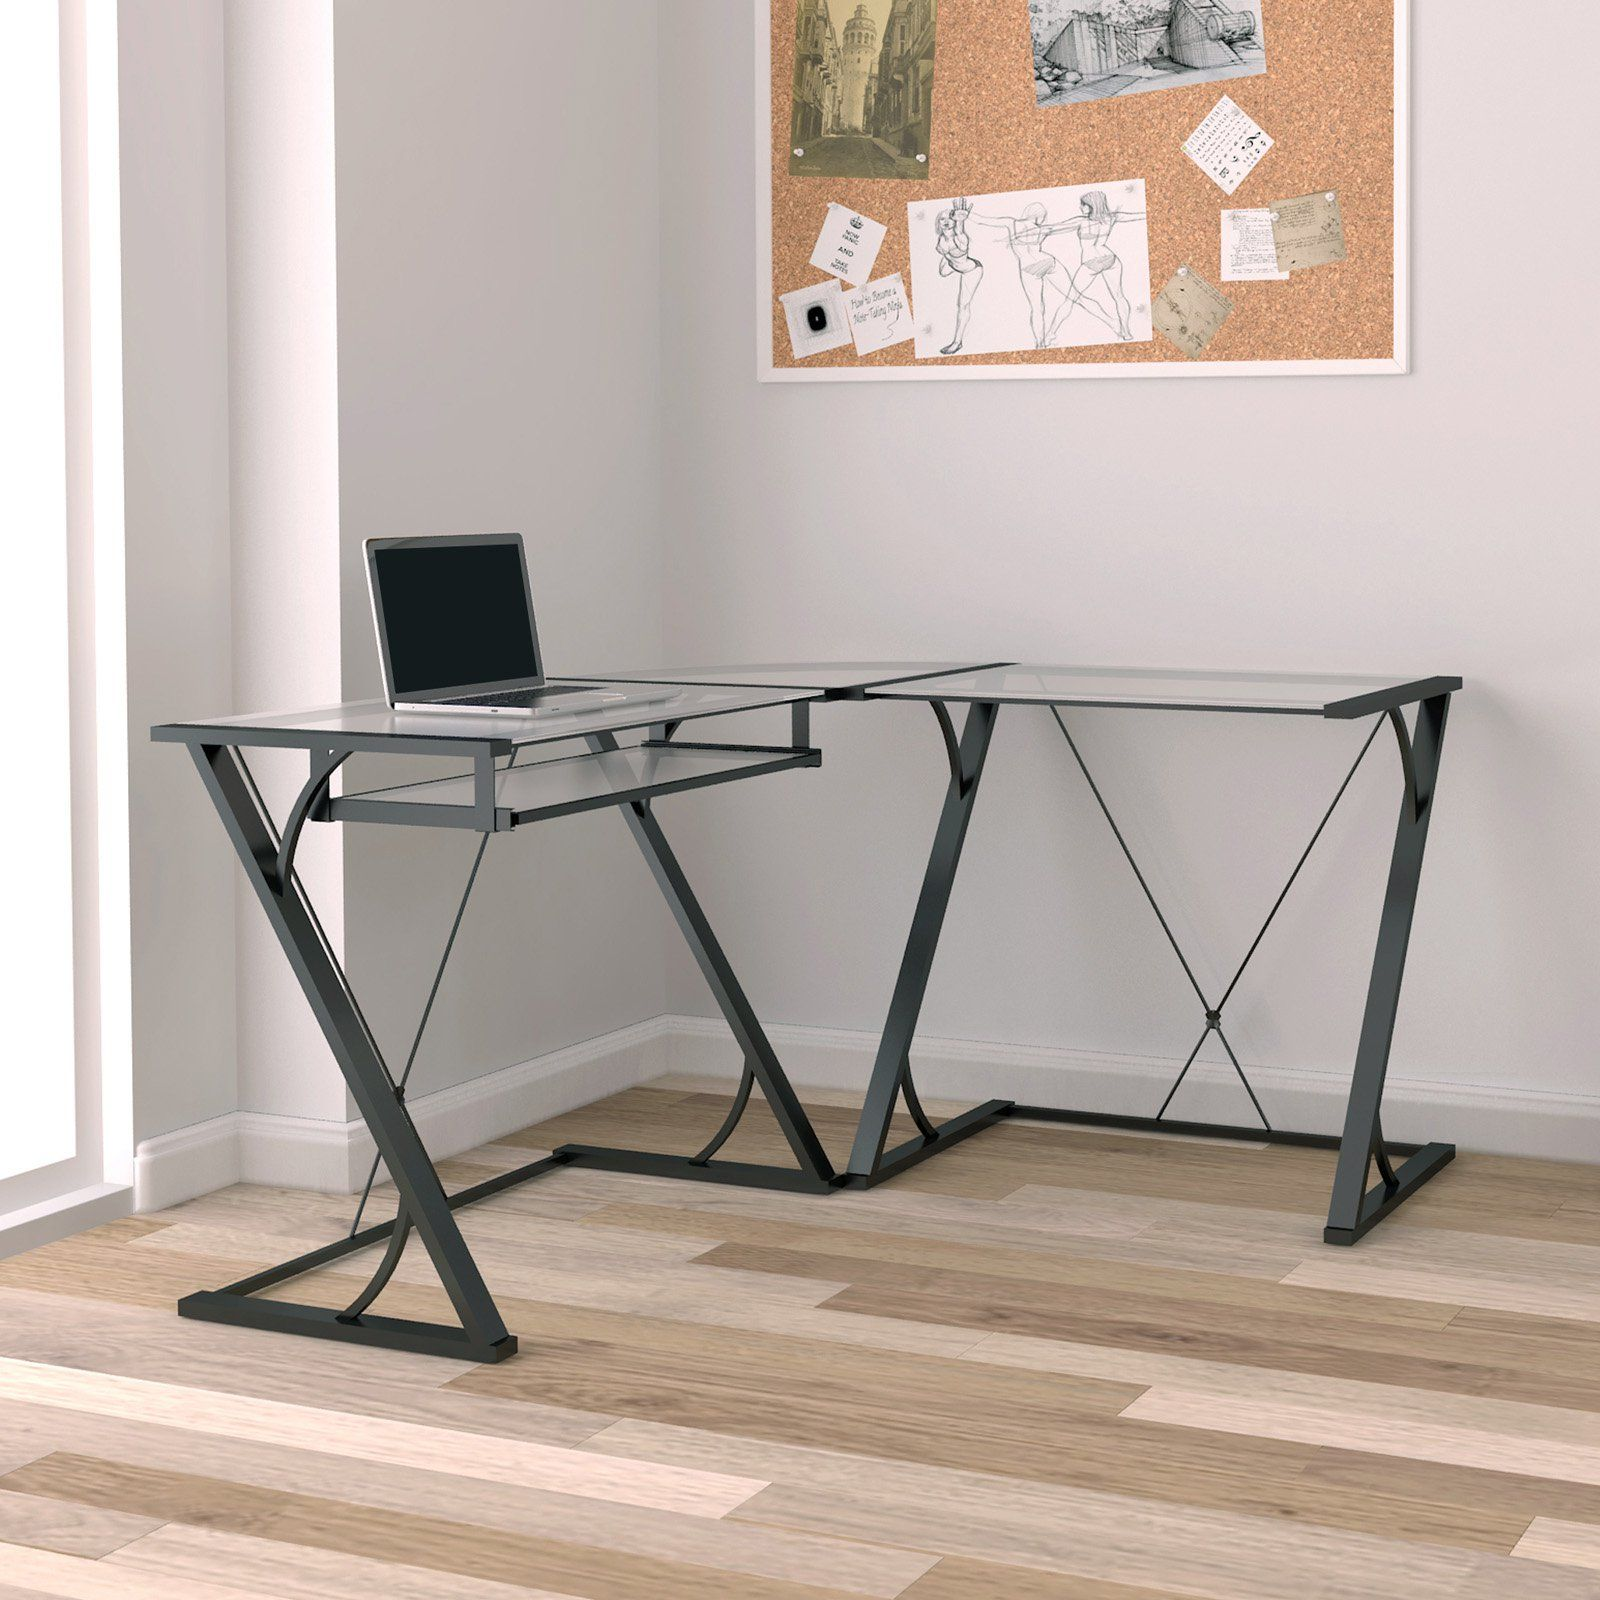 Bello Snyder L Shaped Computer Desk With Keyboard Tray Black  # Muebles Caemmun